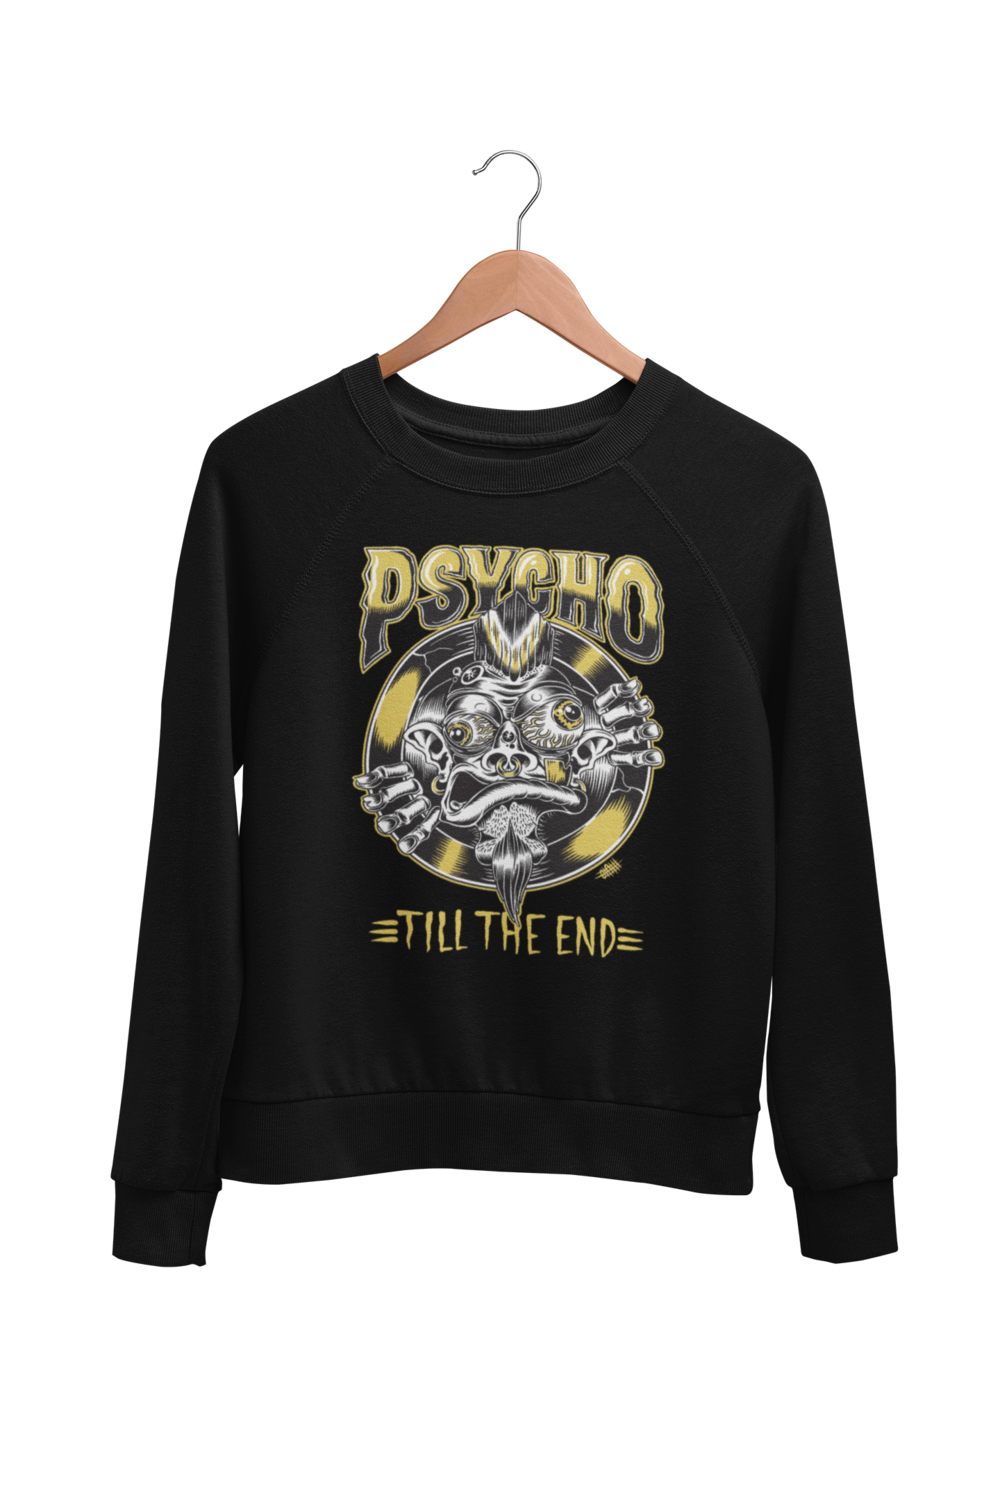 PSYCHO TILL THE END SWEATSHIRT UNISEX BY OLAFH ACE